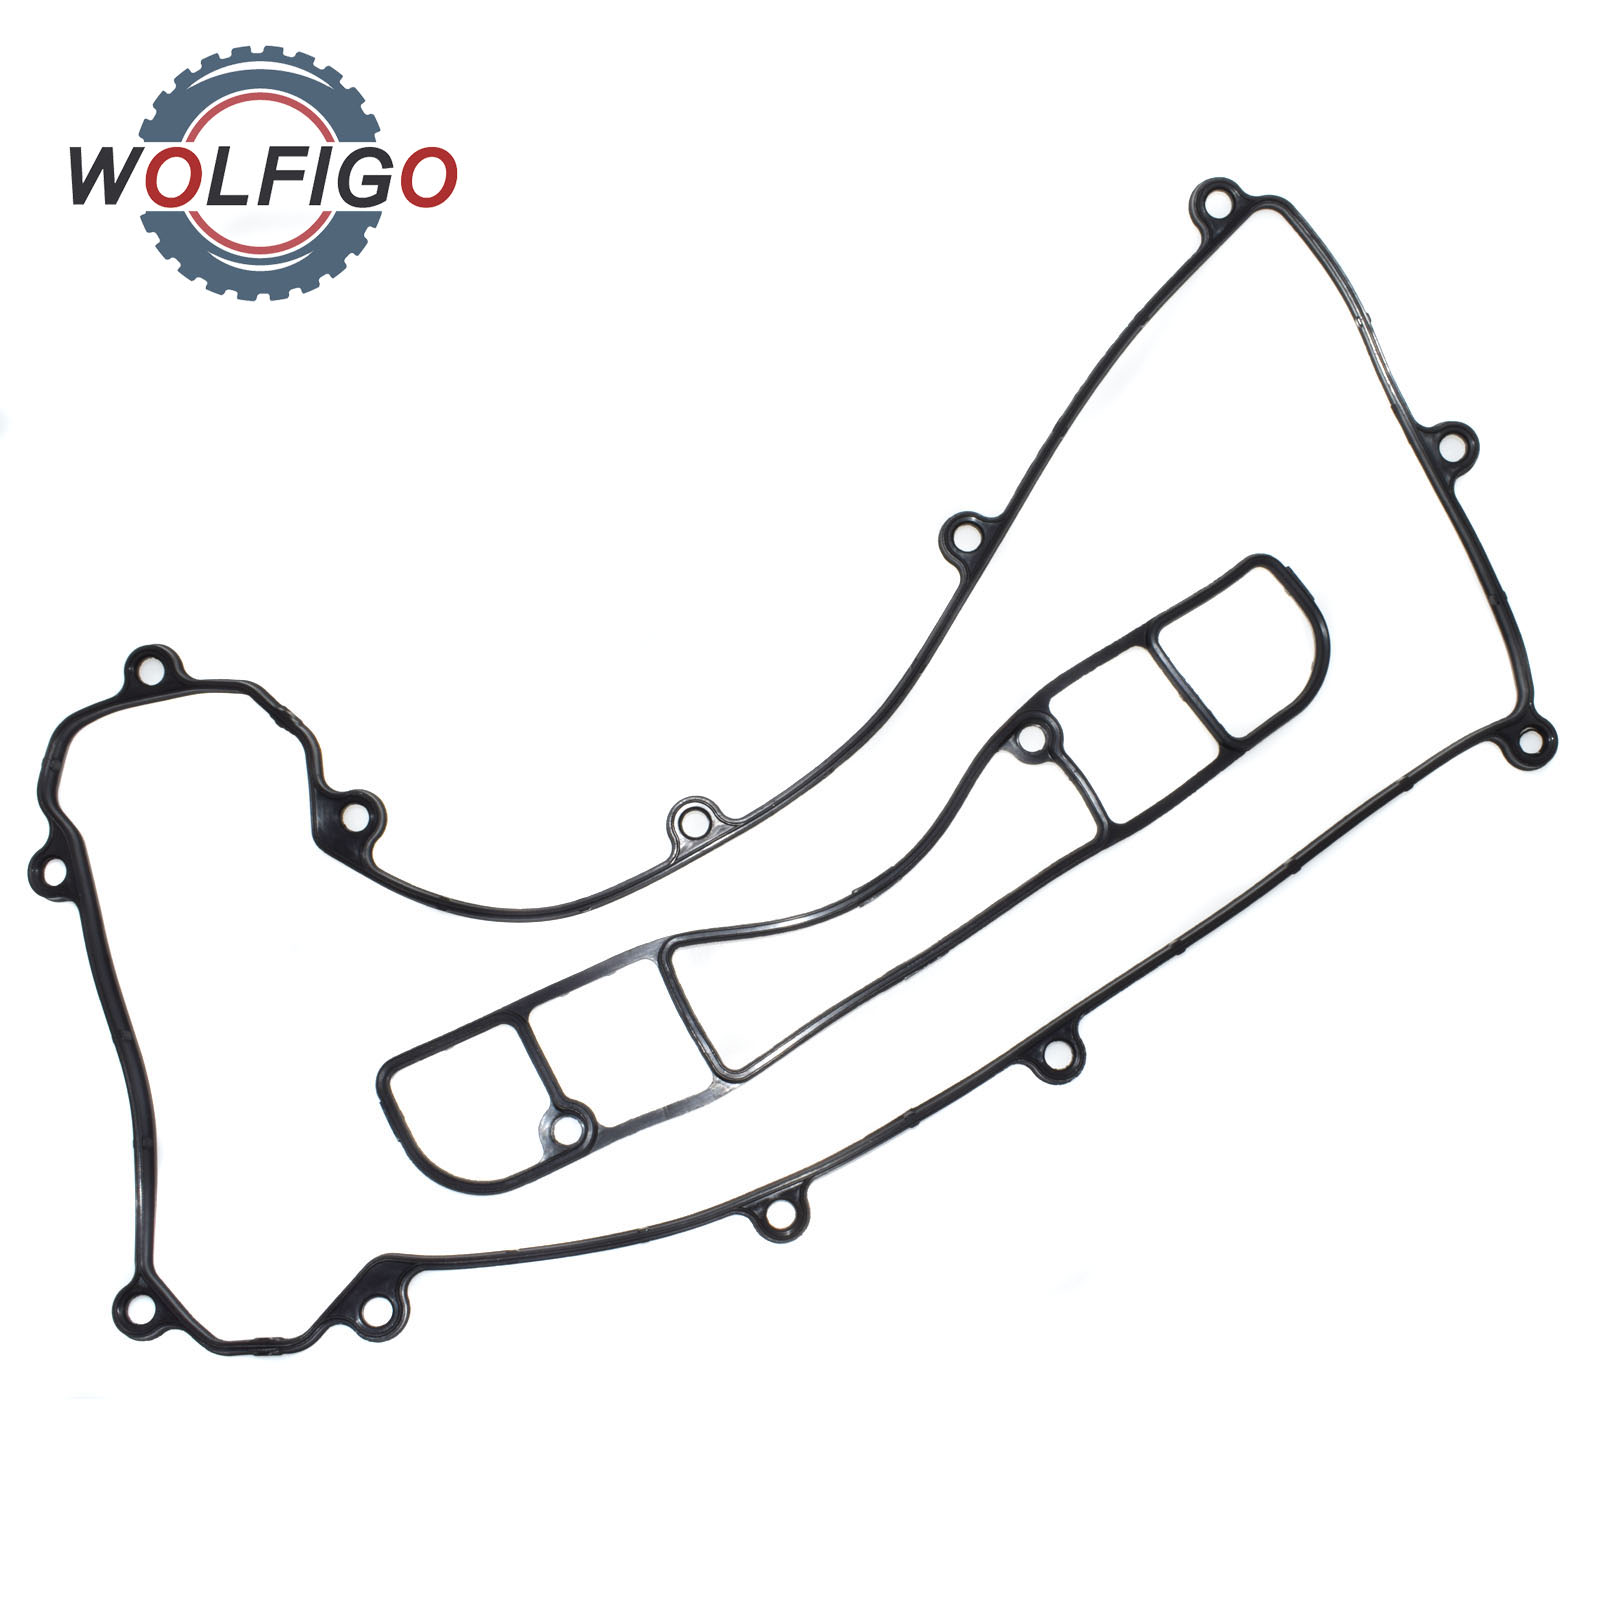 Aliexpress Buy Wolfigo Engine Valve Cover Gasket